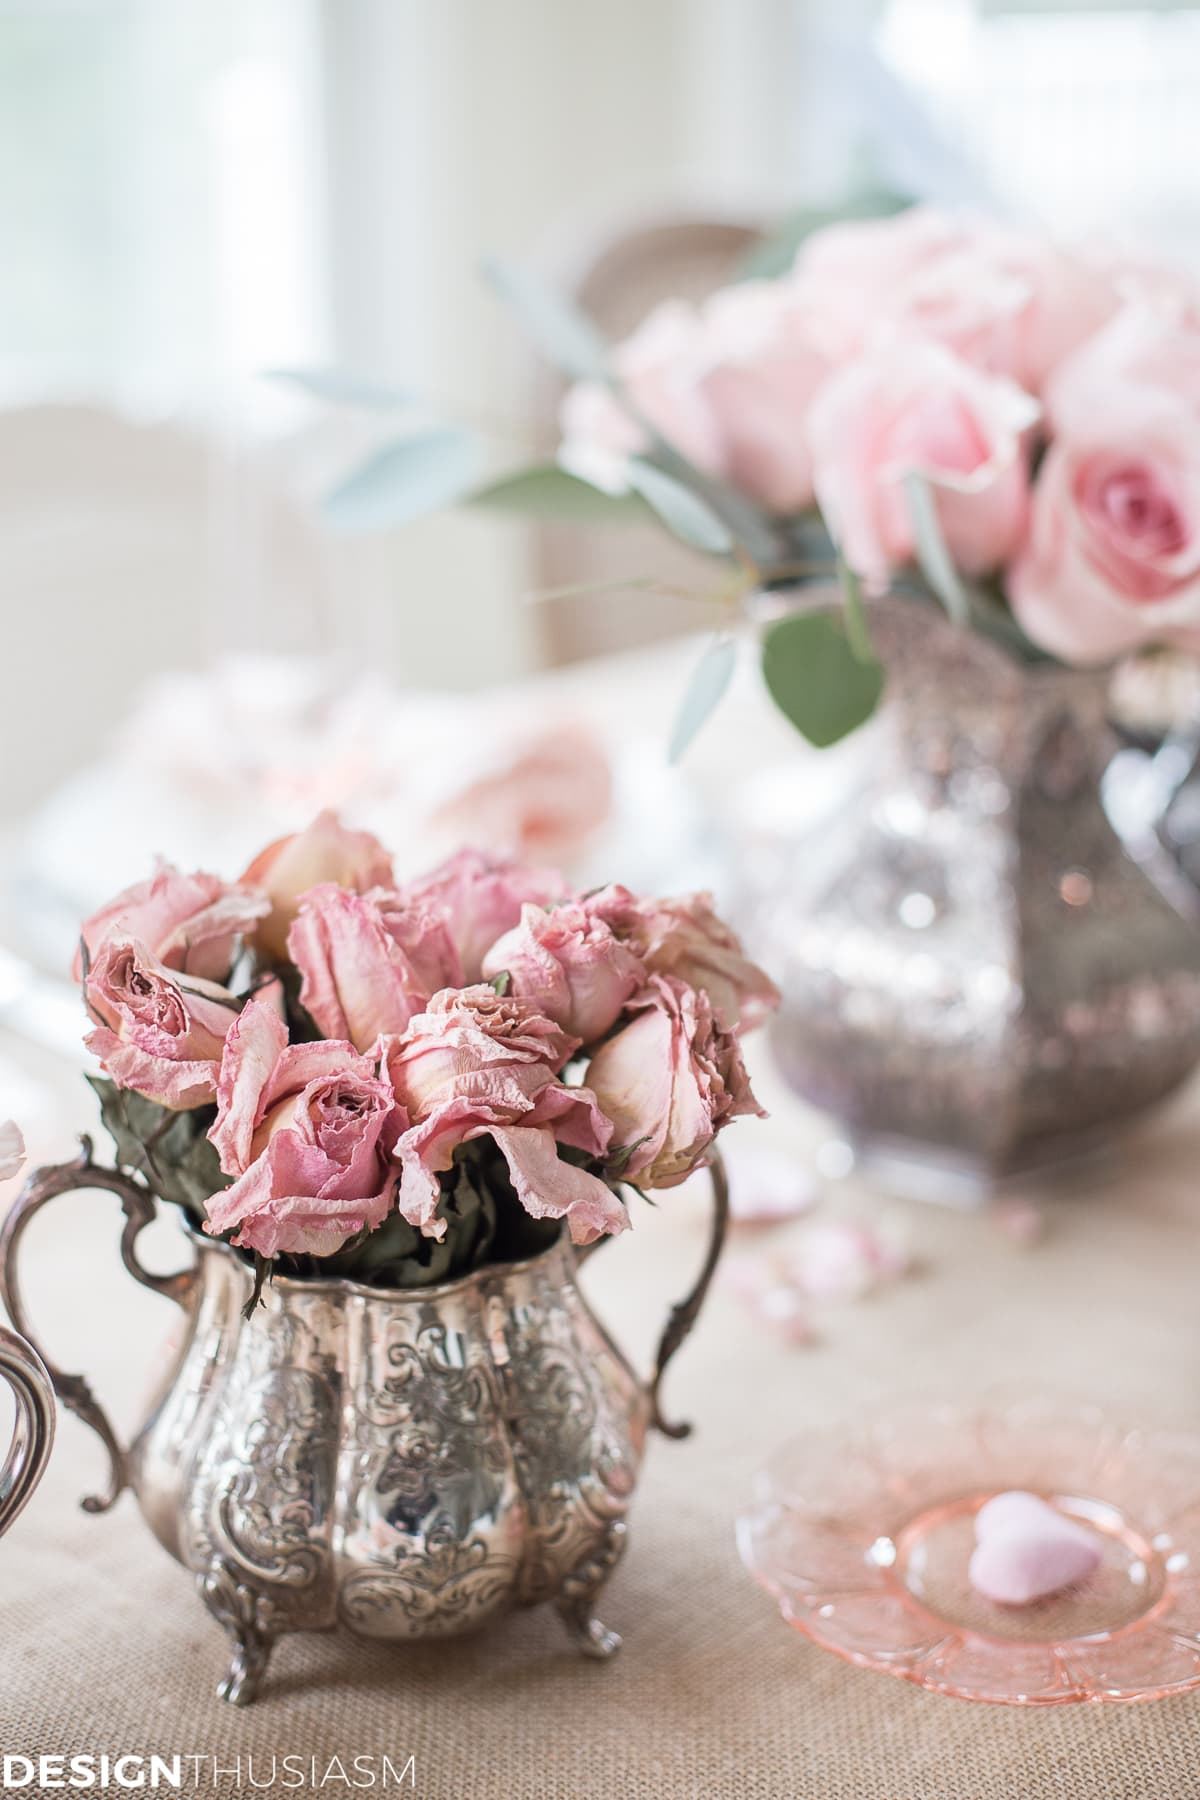 How to Add Rustic Romance to Your Valentine\'s Day Table Setting